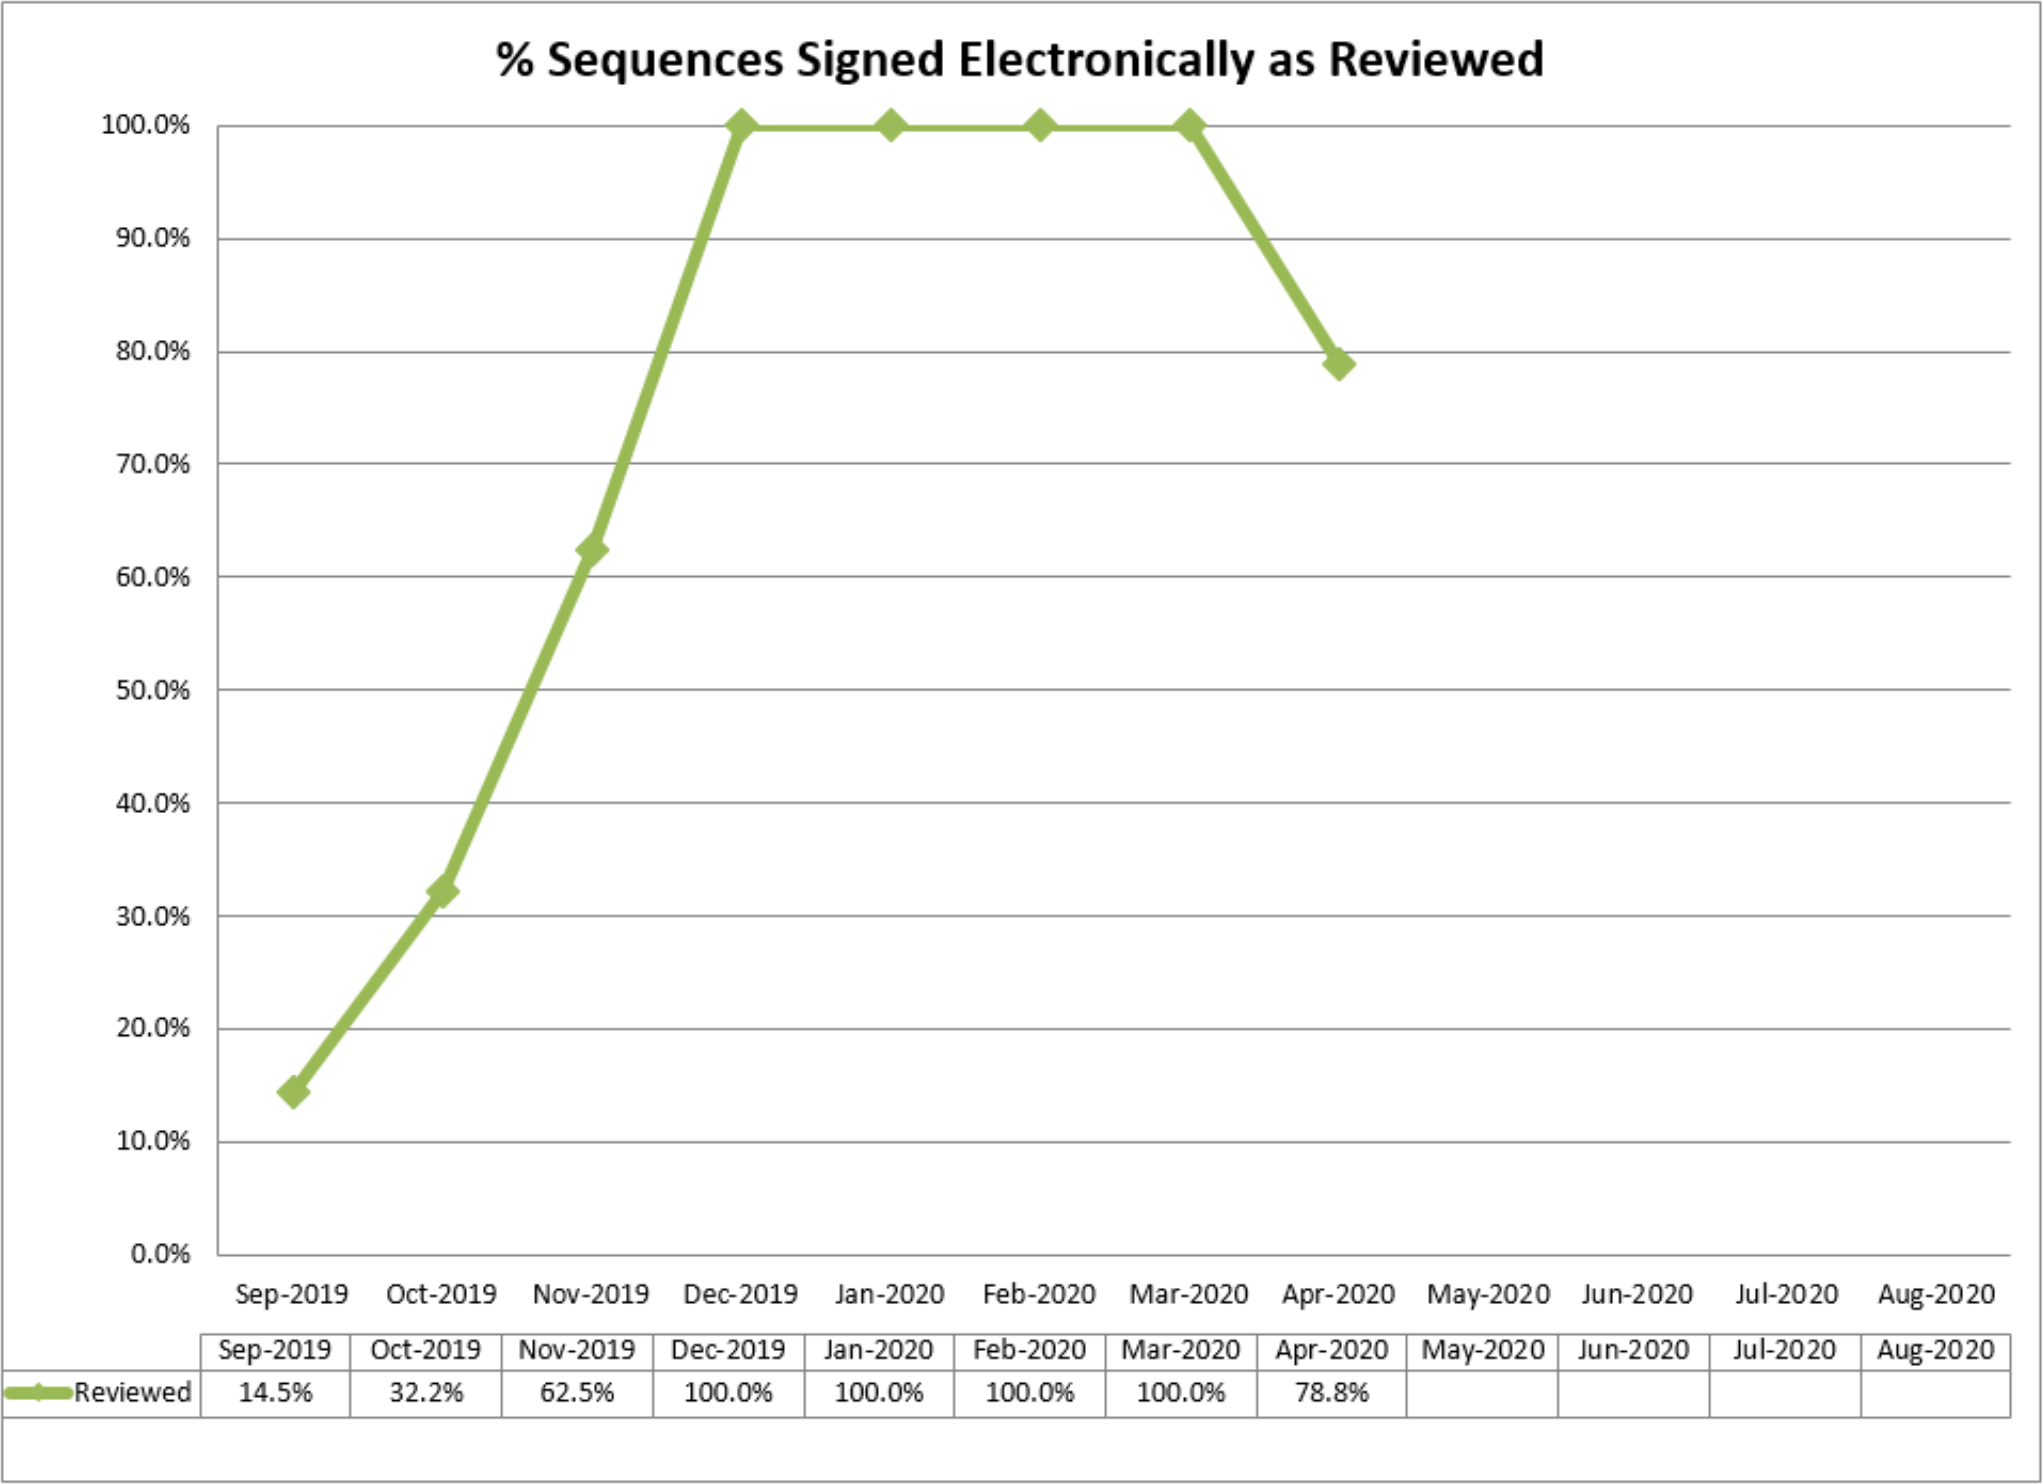 Electronically signed sequence monitoring